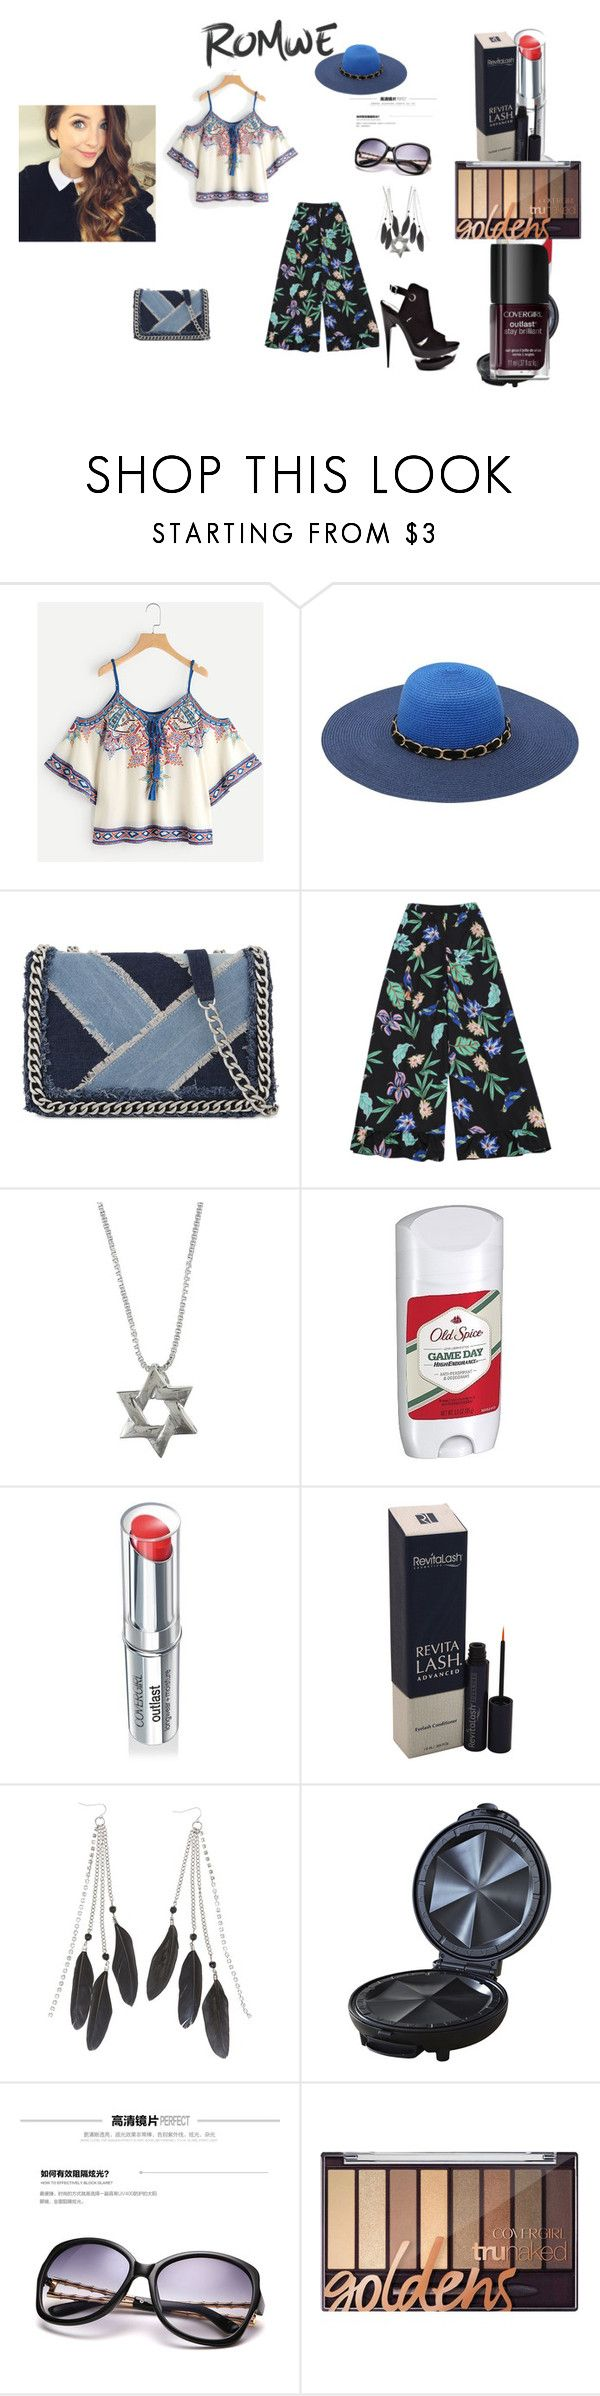 """""""Romwe win $30 coupon contest CLIX"""" by naomig-dix ❤ liked on Polyvore featuring M&Co, ALDO, Old Spice, COVERGIRL, Charlotte Russe, Imusa, KOON and Nemesis"""